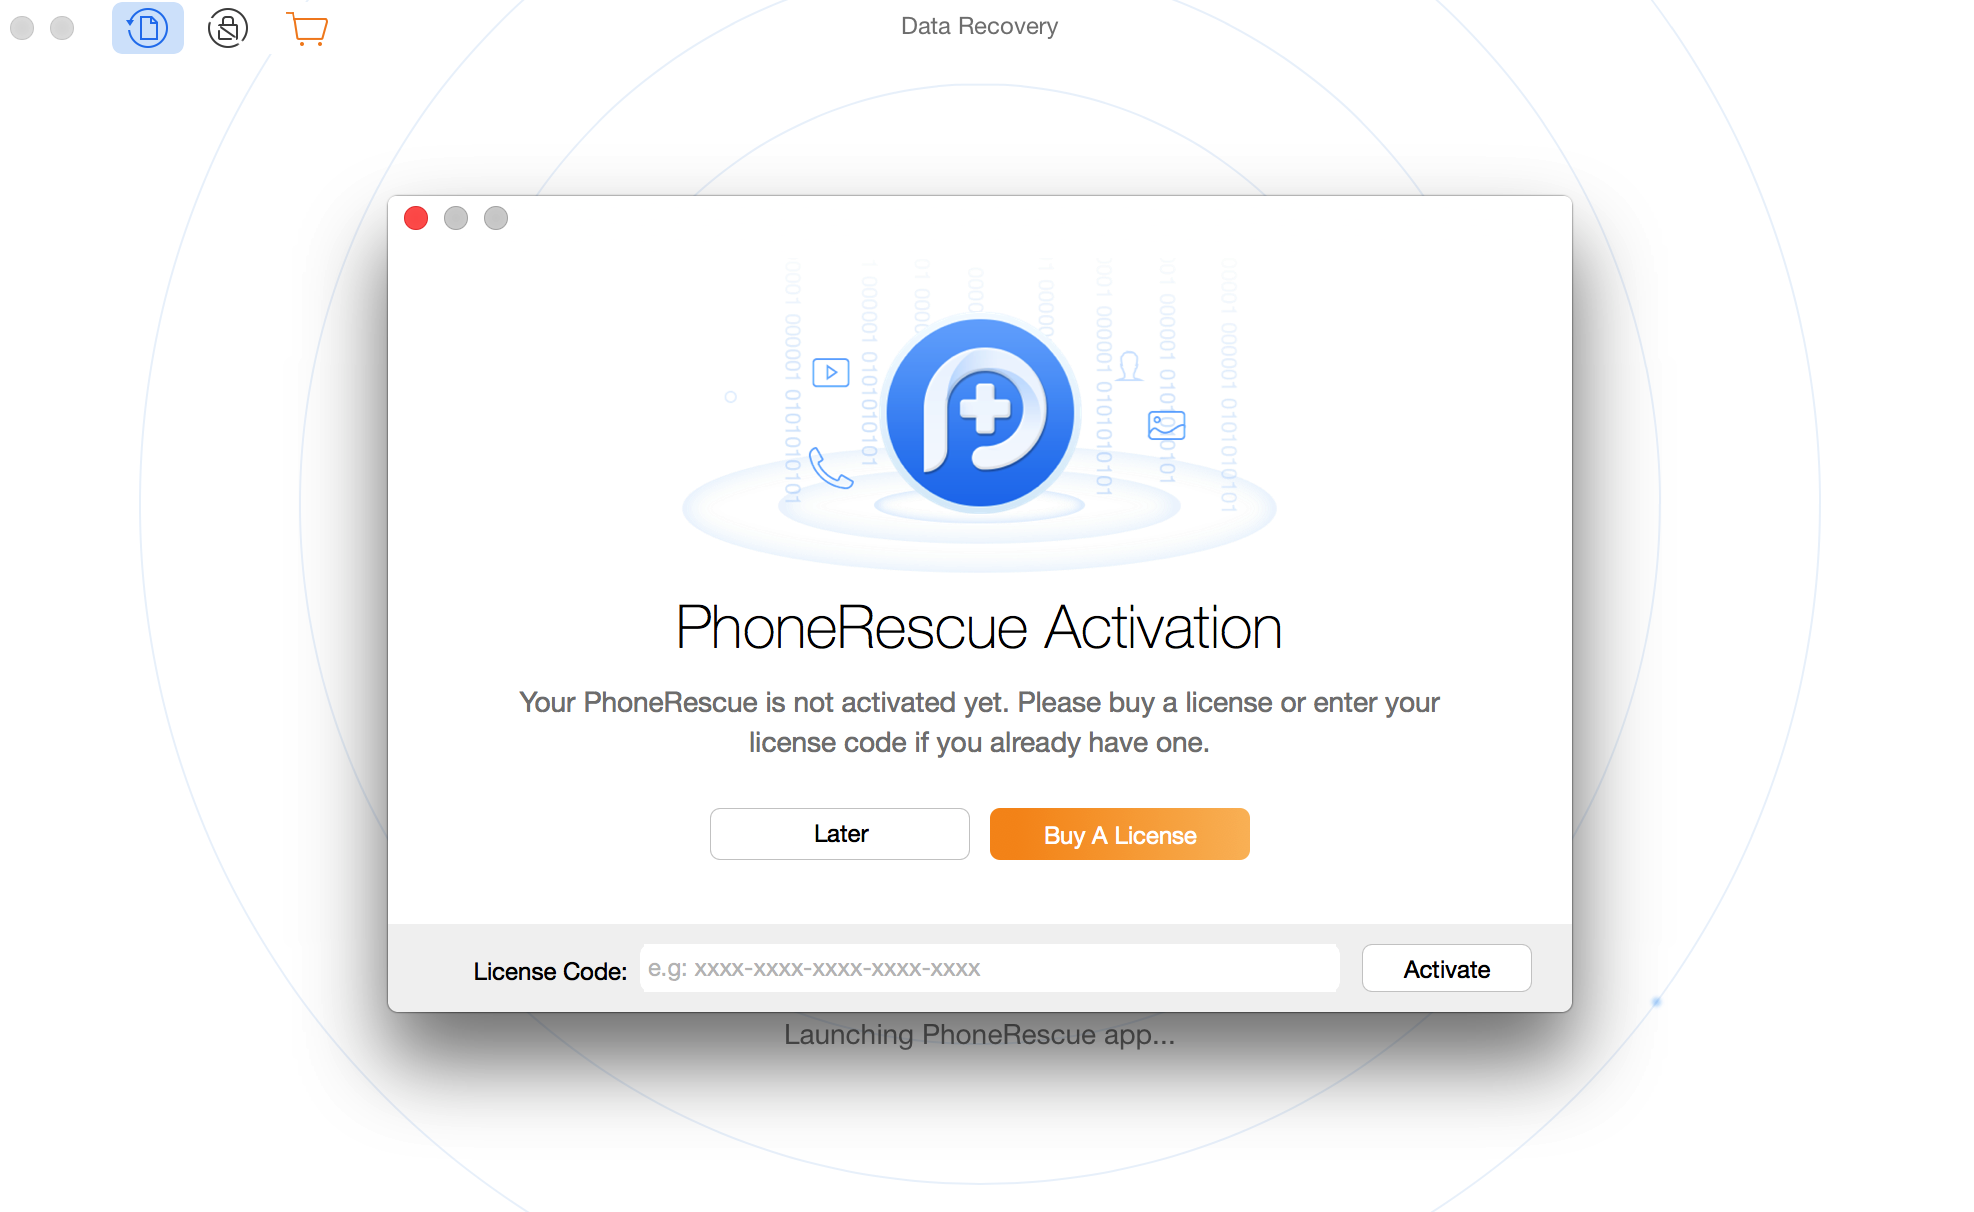 Registering PhoneRescue for SONY